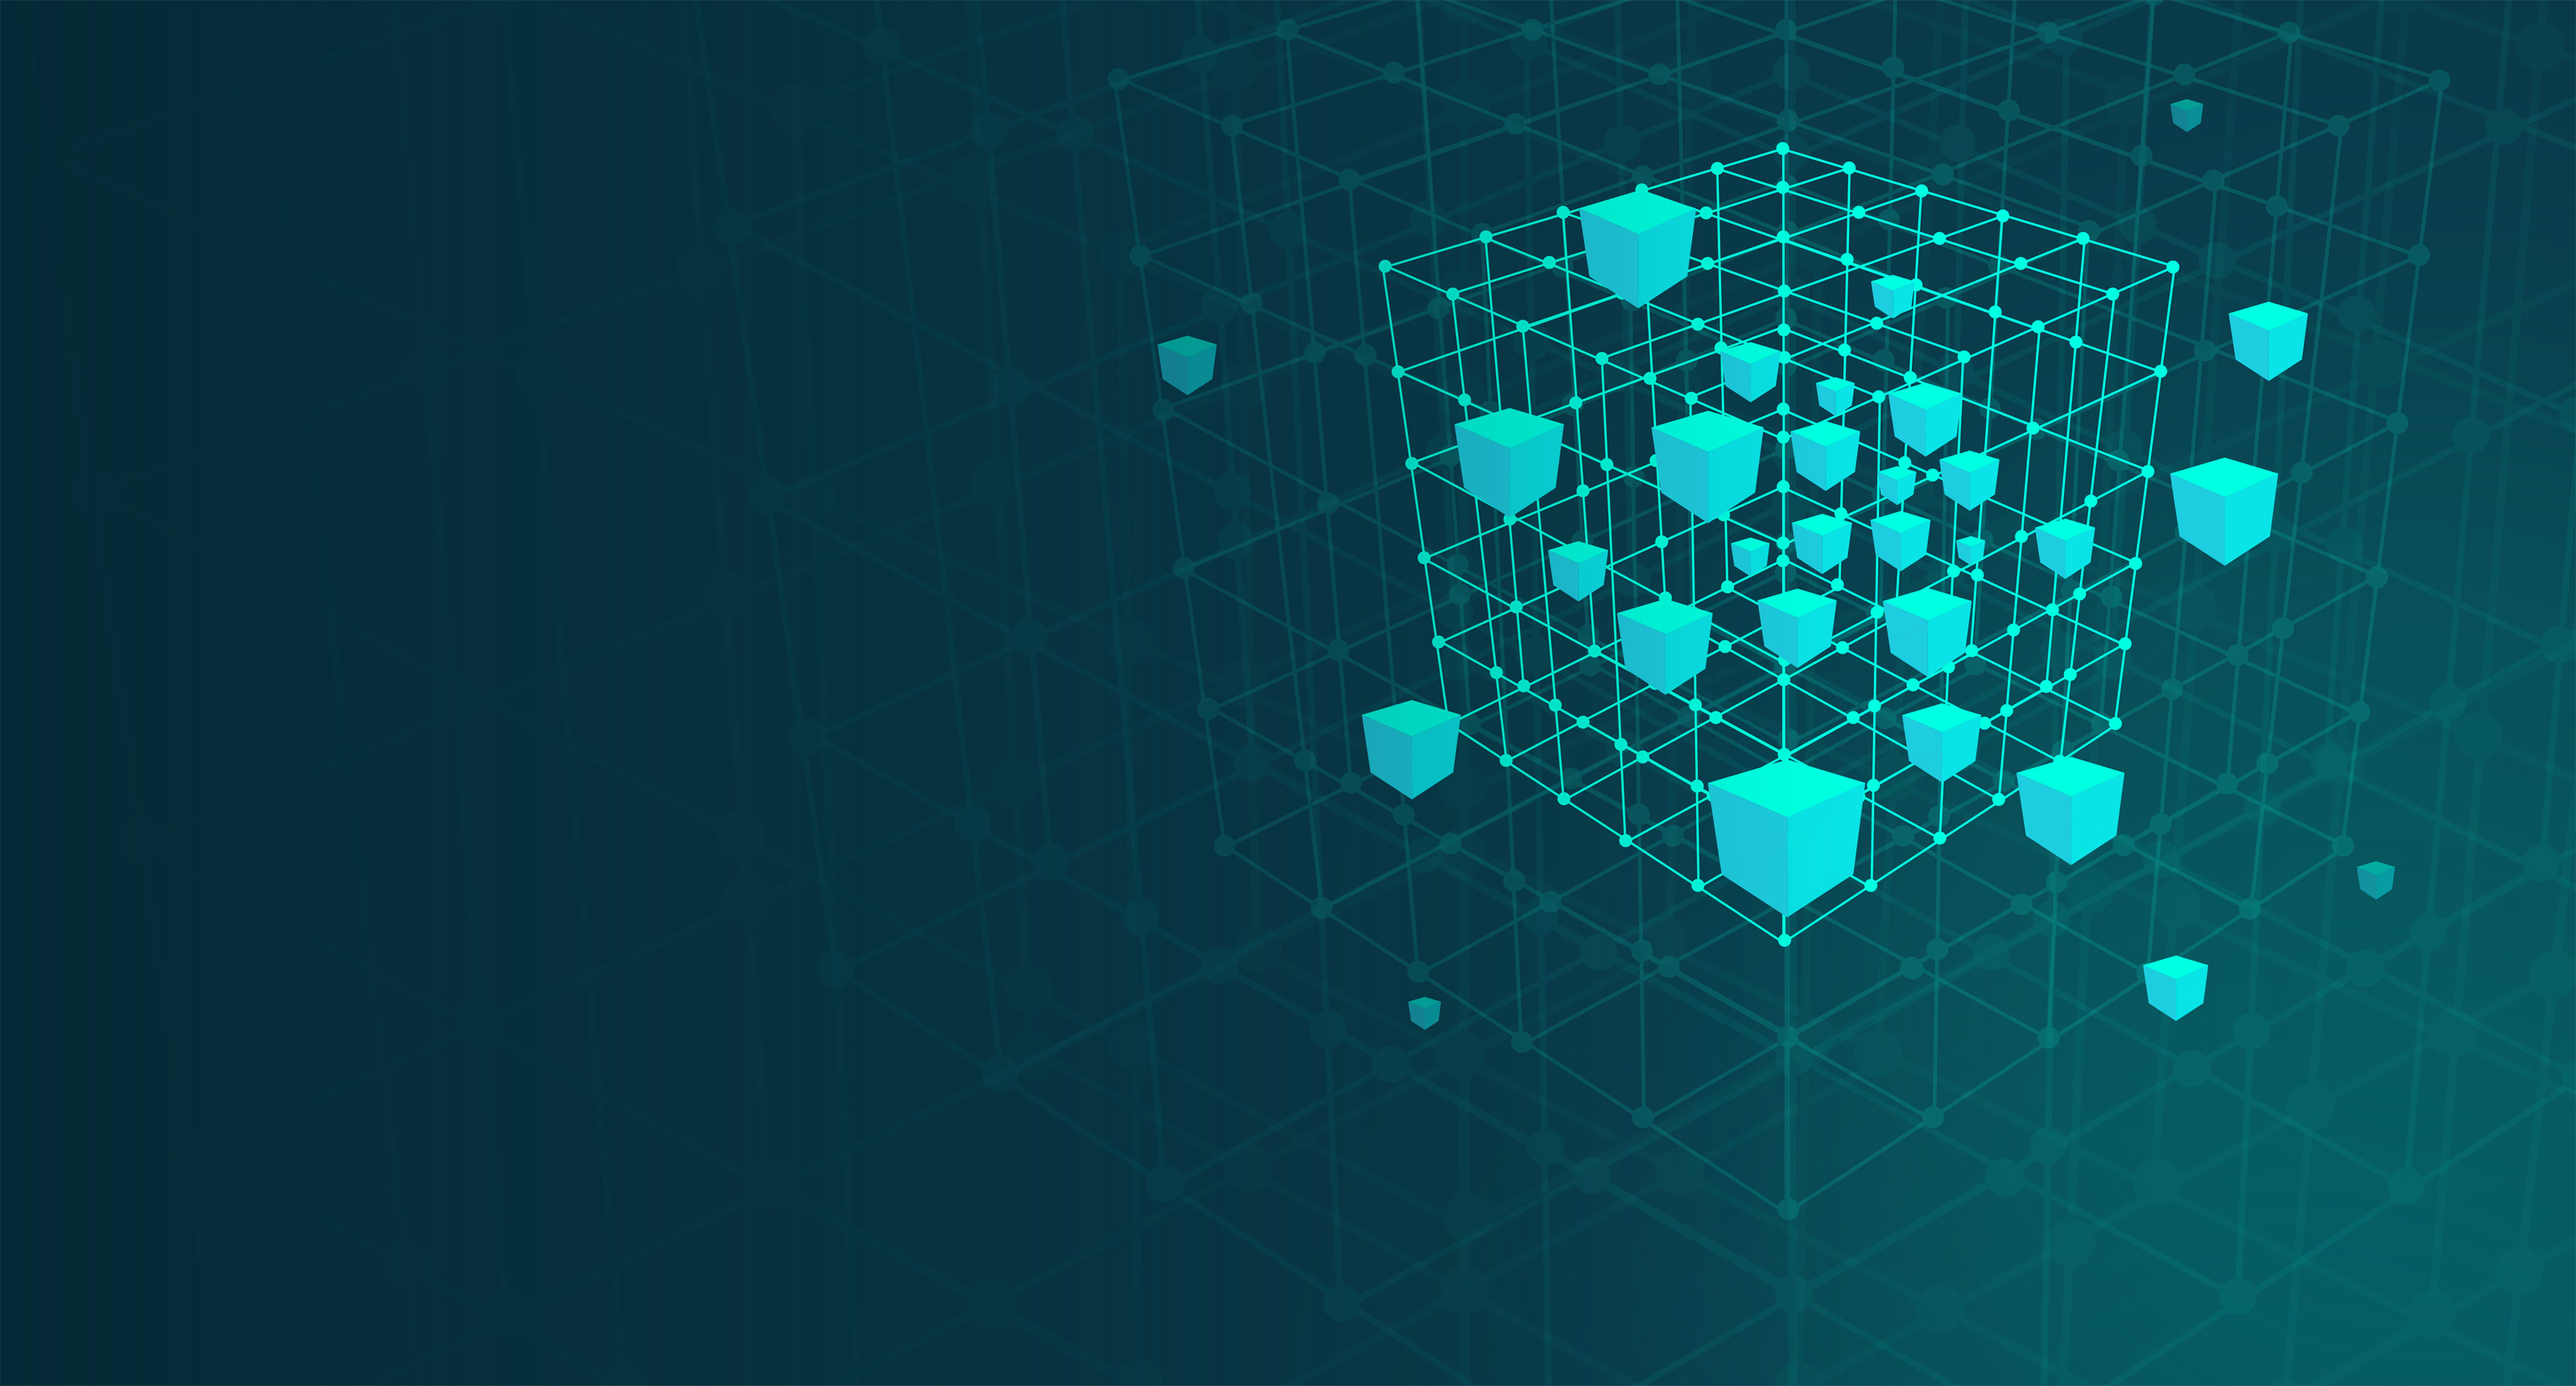 Cube mesh - abstract - big data and data mining concept photo